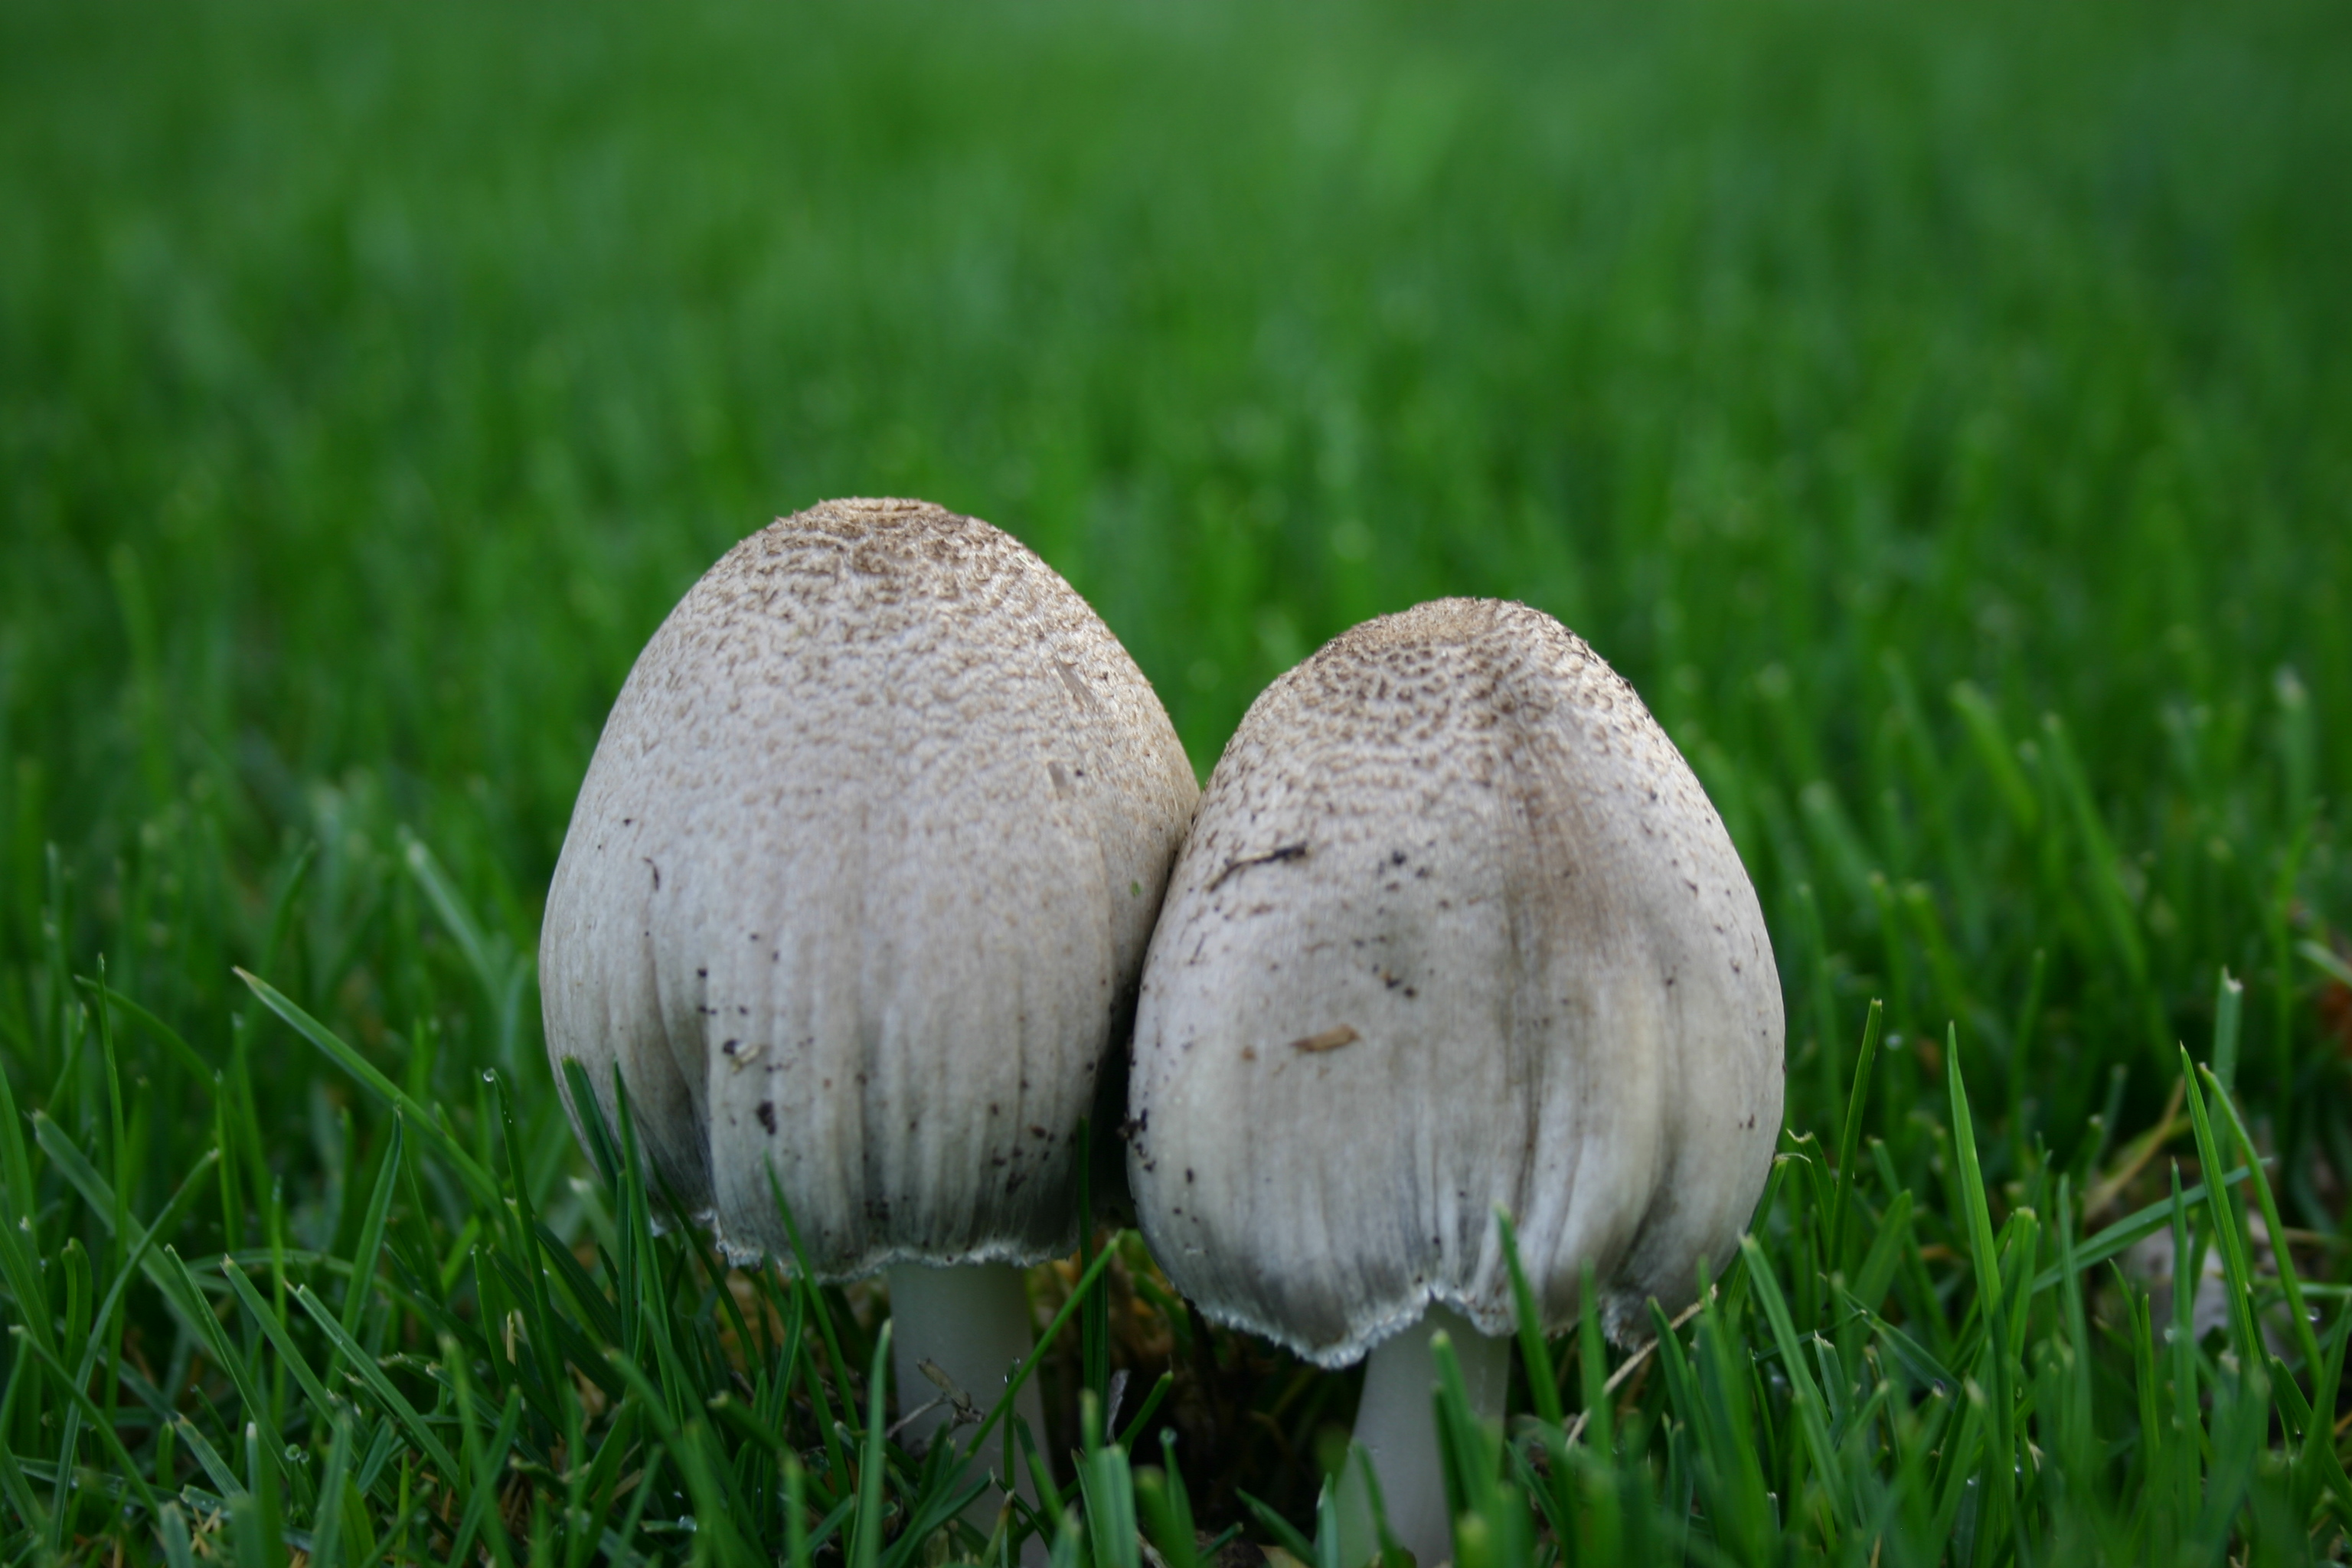 Two white mushrooms in green grass.